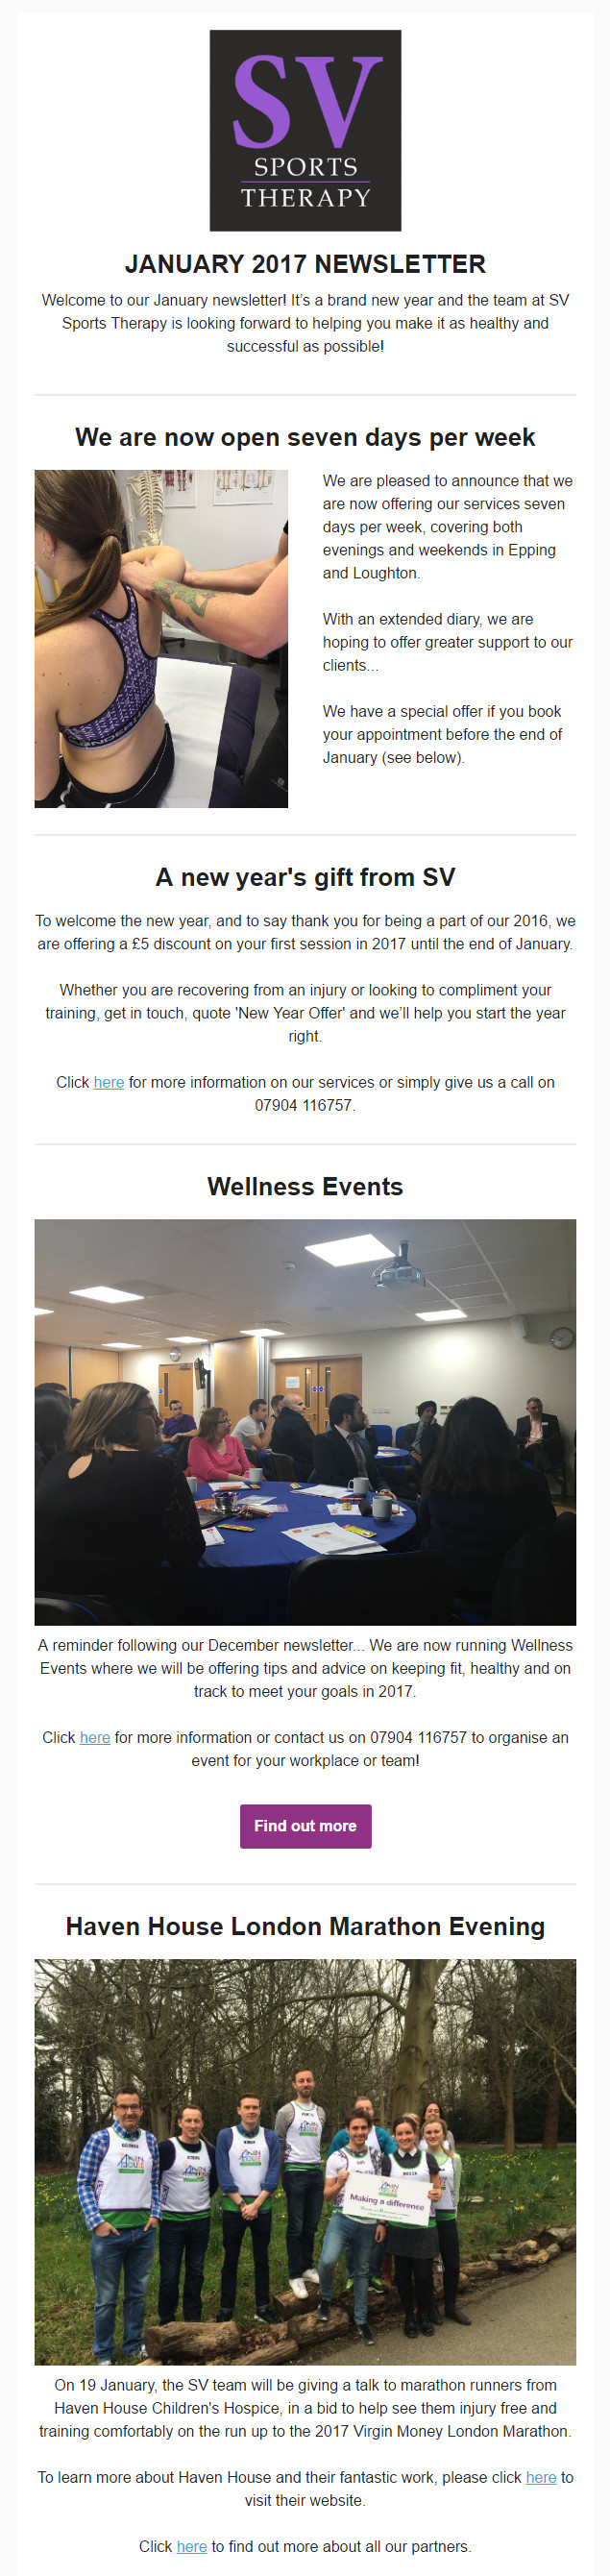 SV Sports Therapy December 2016 Newsletter